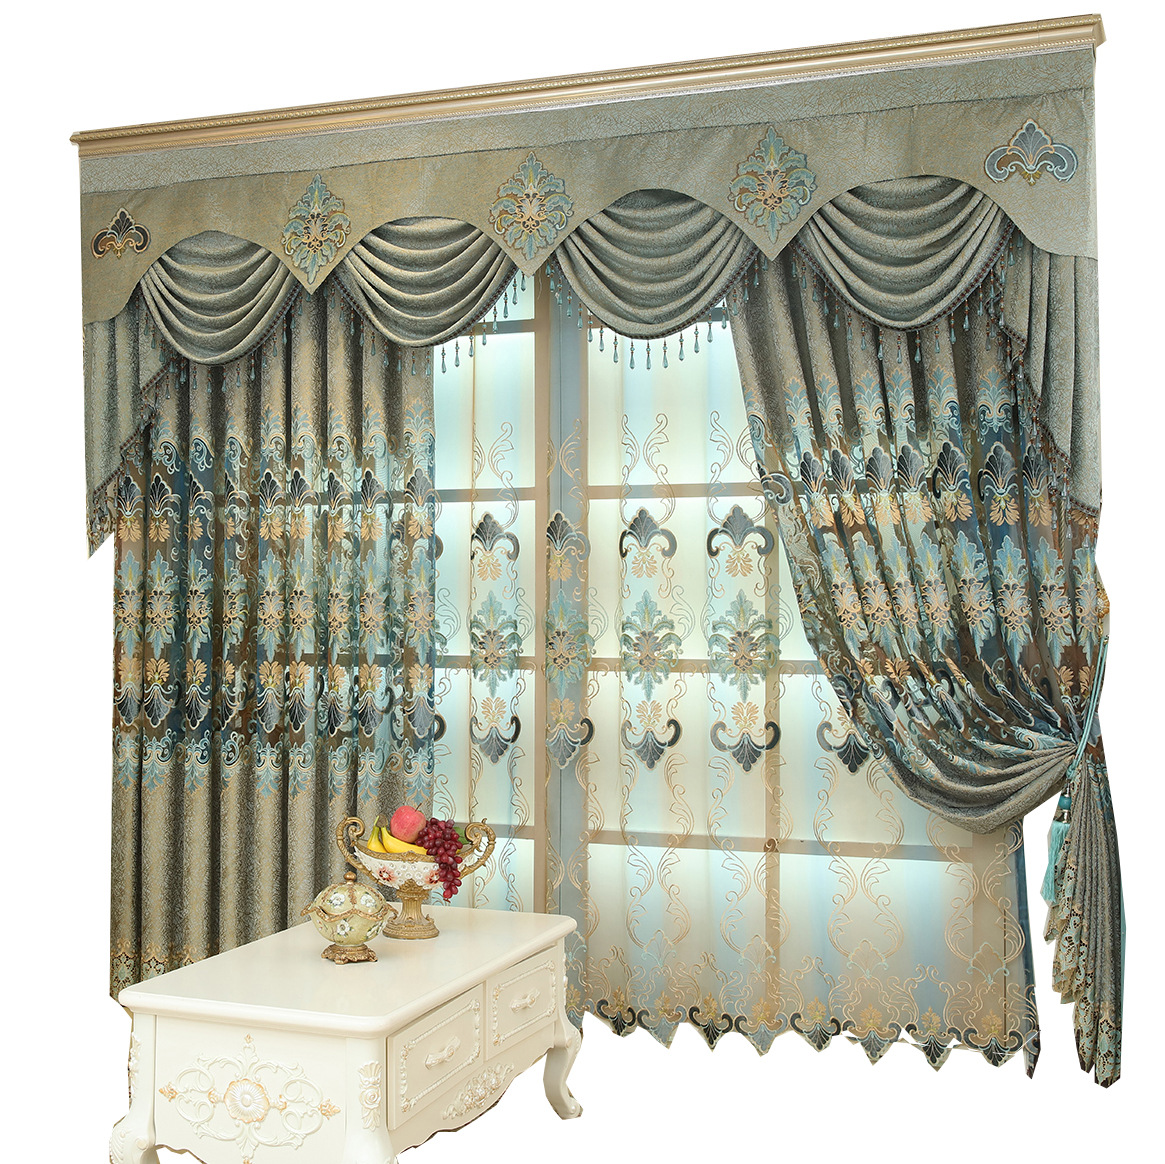 High-grade European Classical Luxury Chenille Water-soluble Embroidery Curtains For Living Dining Room Bedroom.